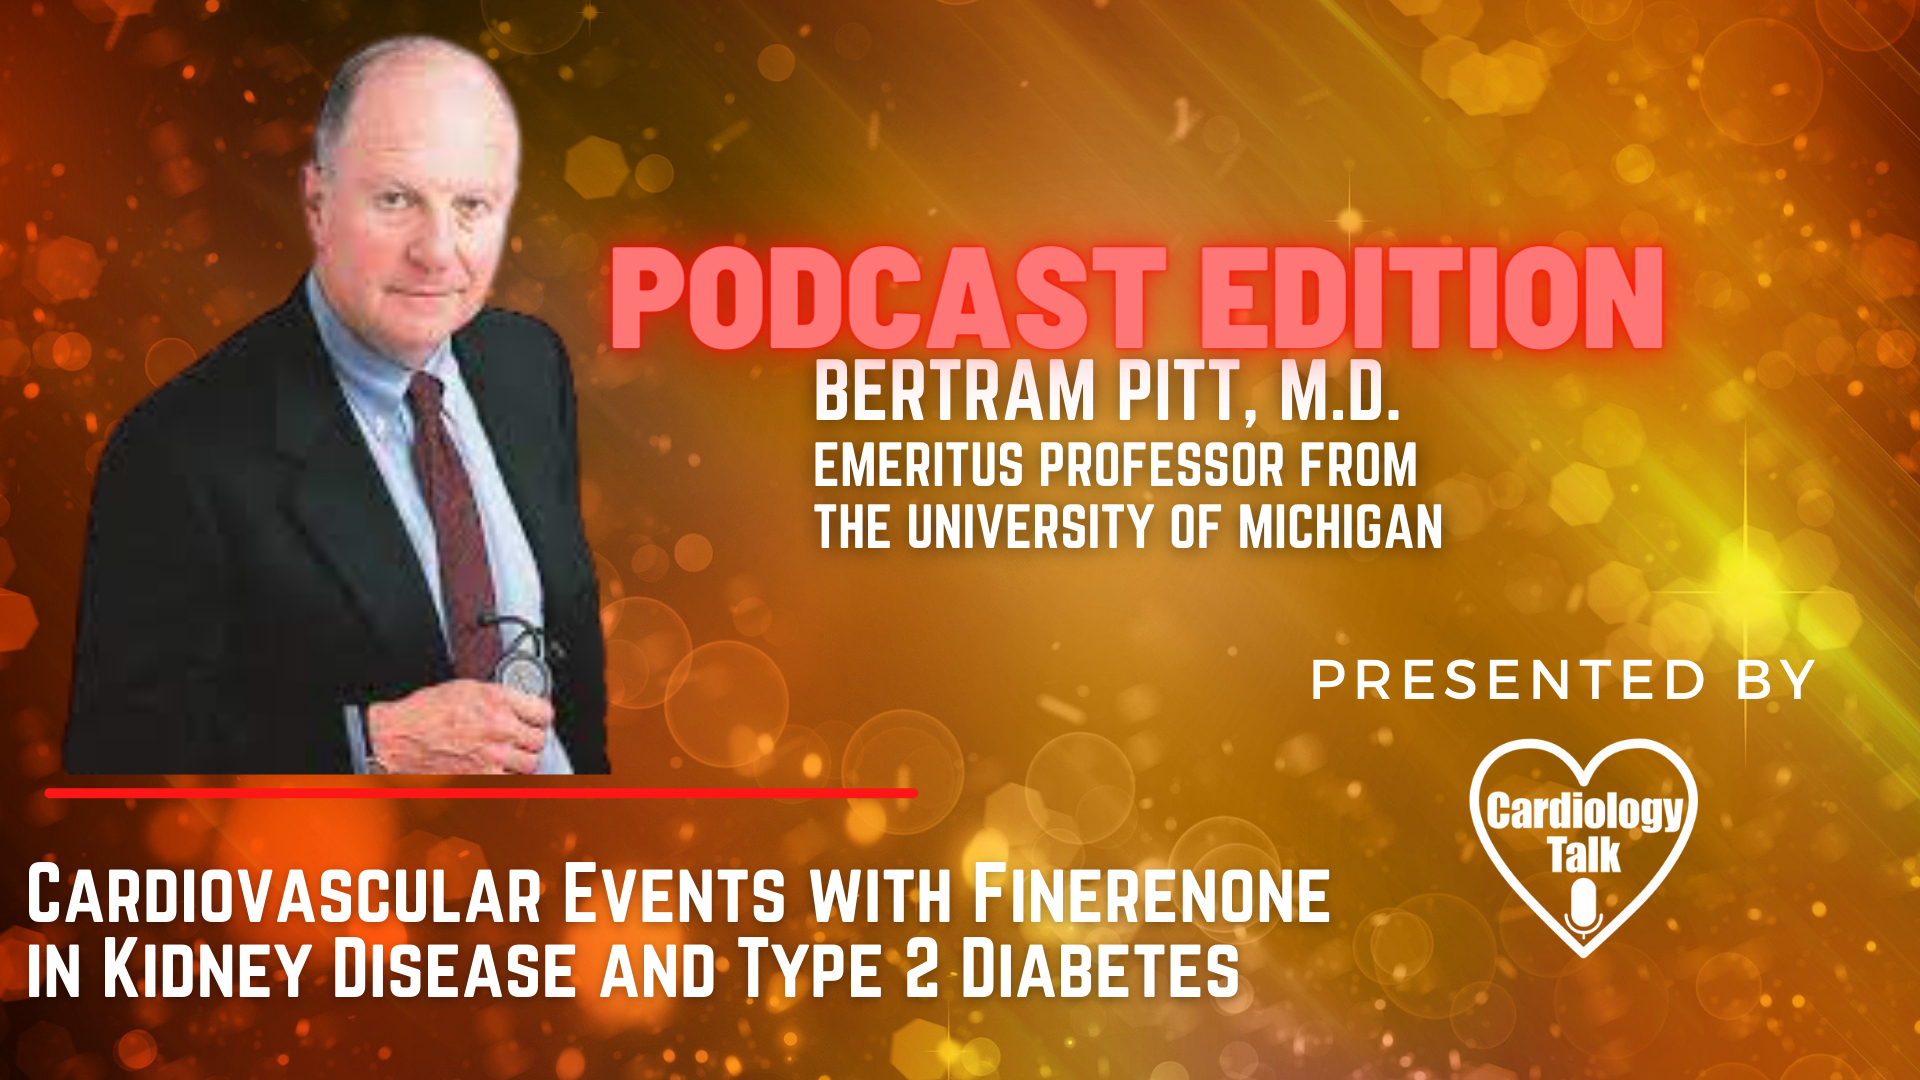 Podcast- Bertram Pitt, M.D. - @UMich @UMichCardiology #CardiovascularEvents #Cardiology #Research  Cardiovascular Events with Finerenone in Kidney Disease and Type 2 Diabetes